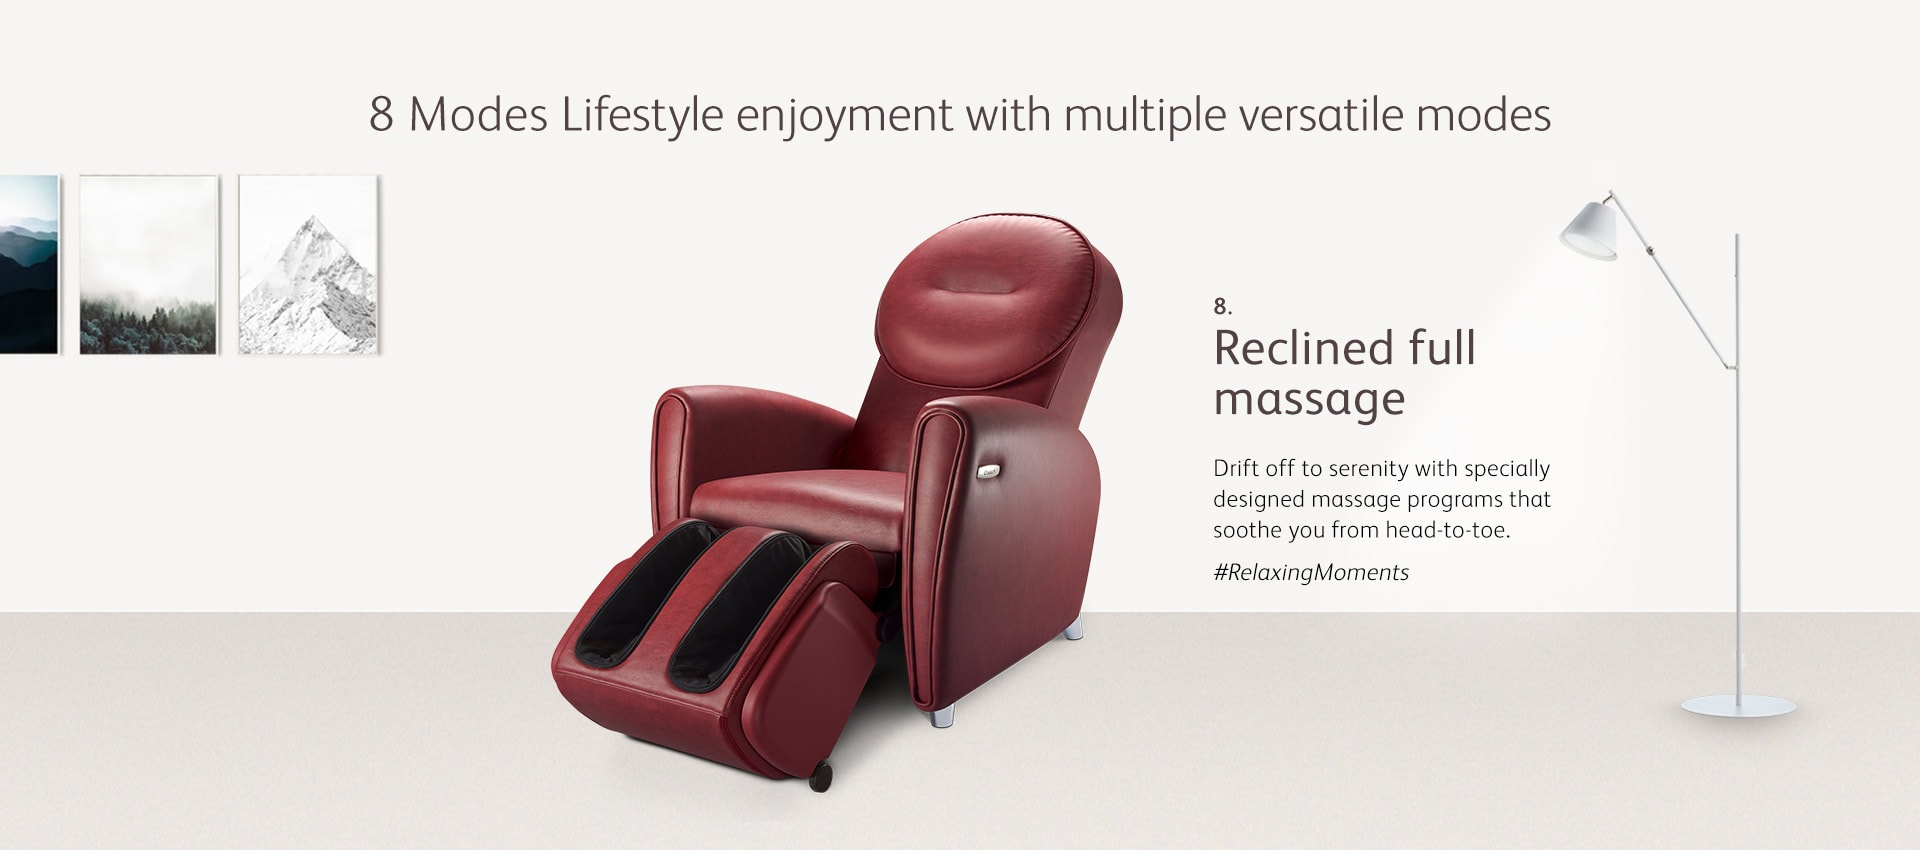 Udiva2 Massage Chair Mode 8 Reclined Full Massage